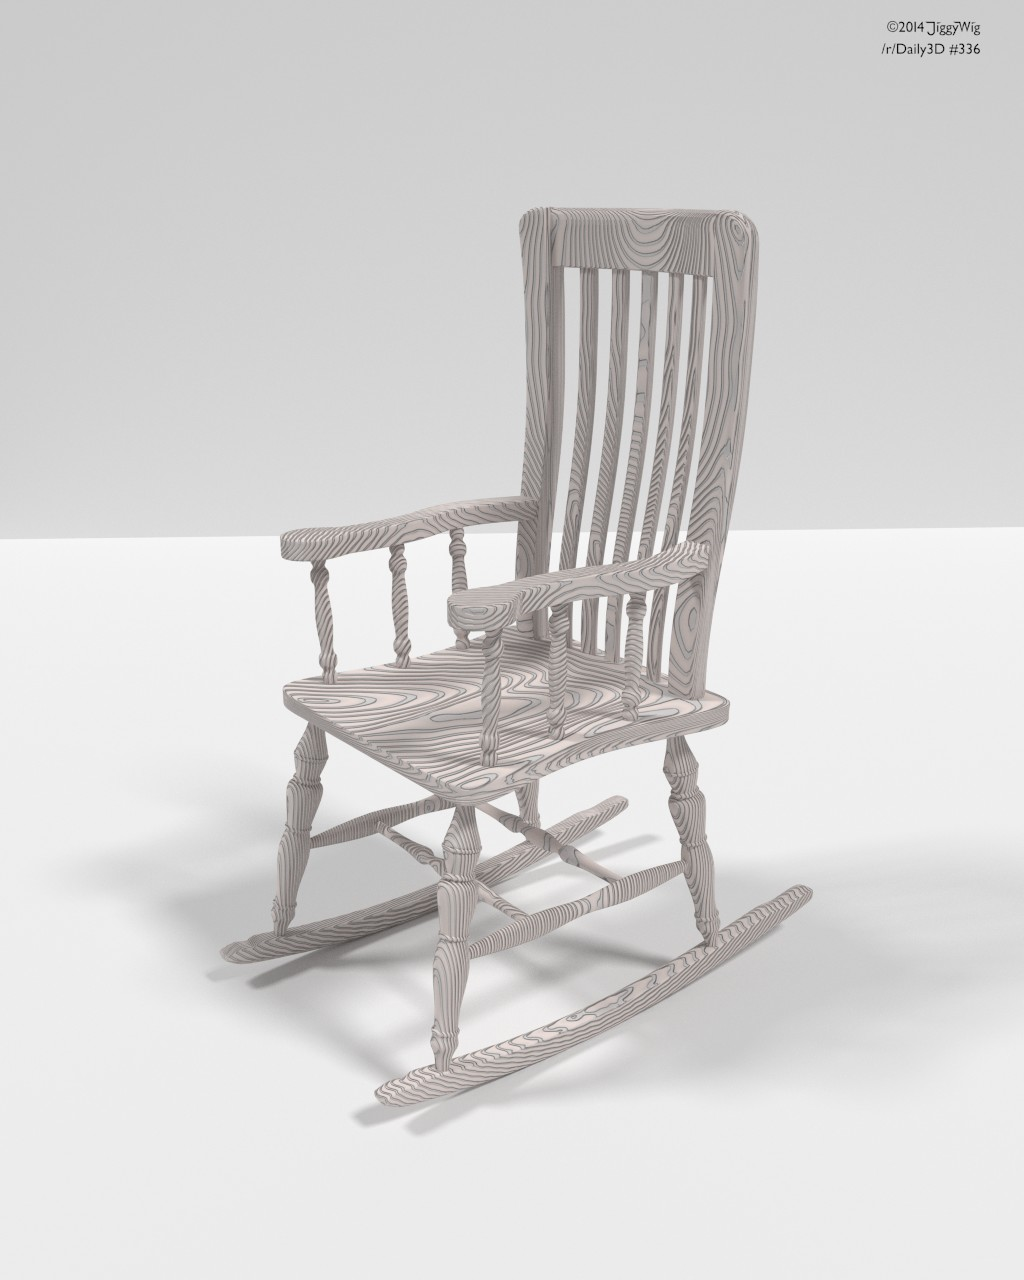 #336 - Rocking chair